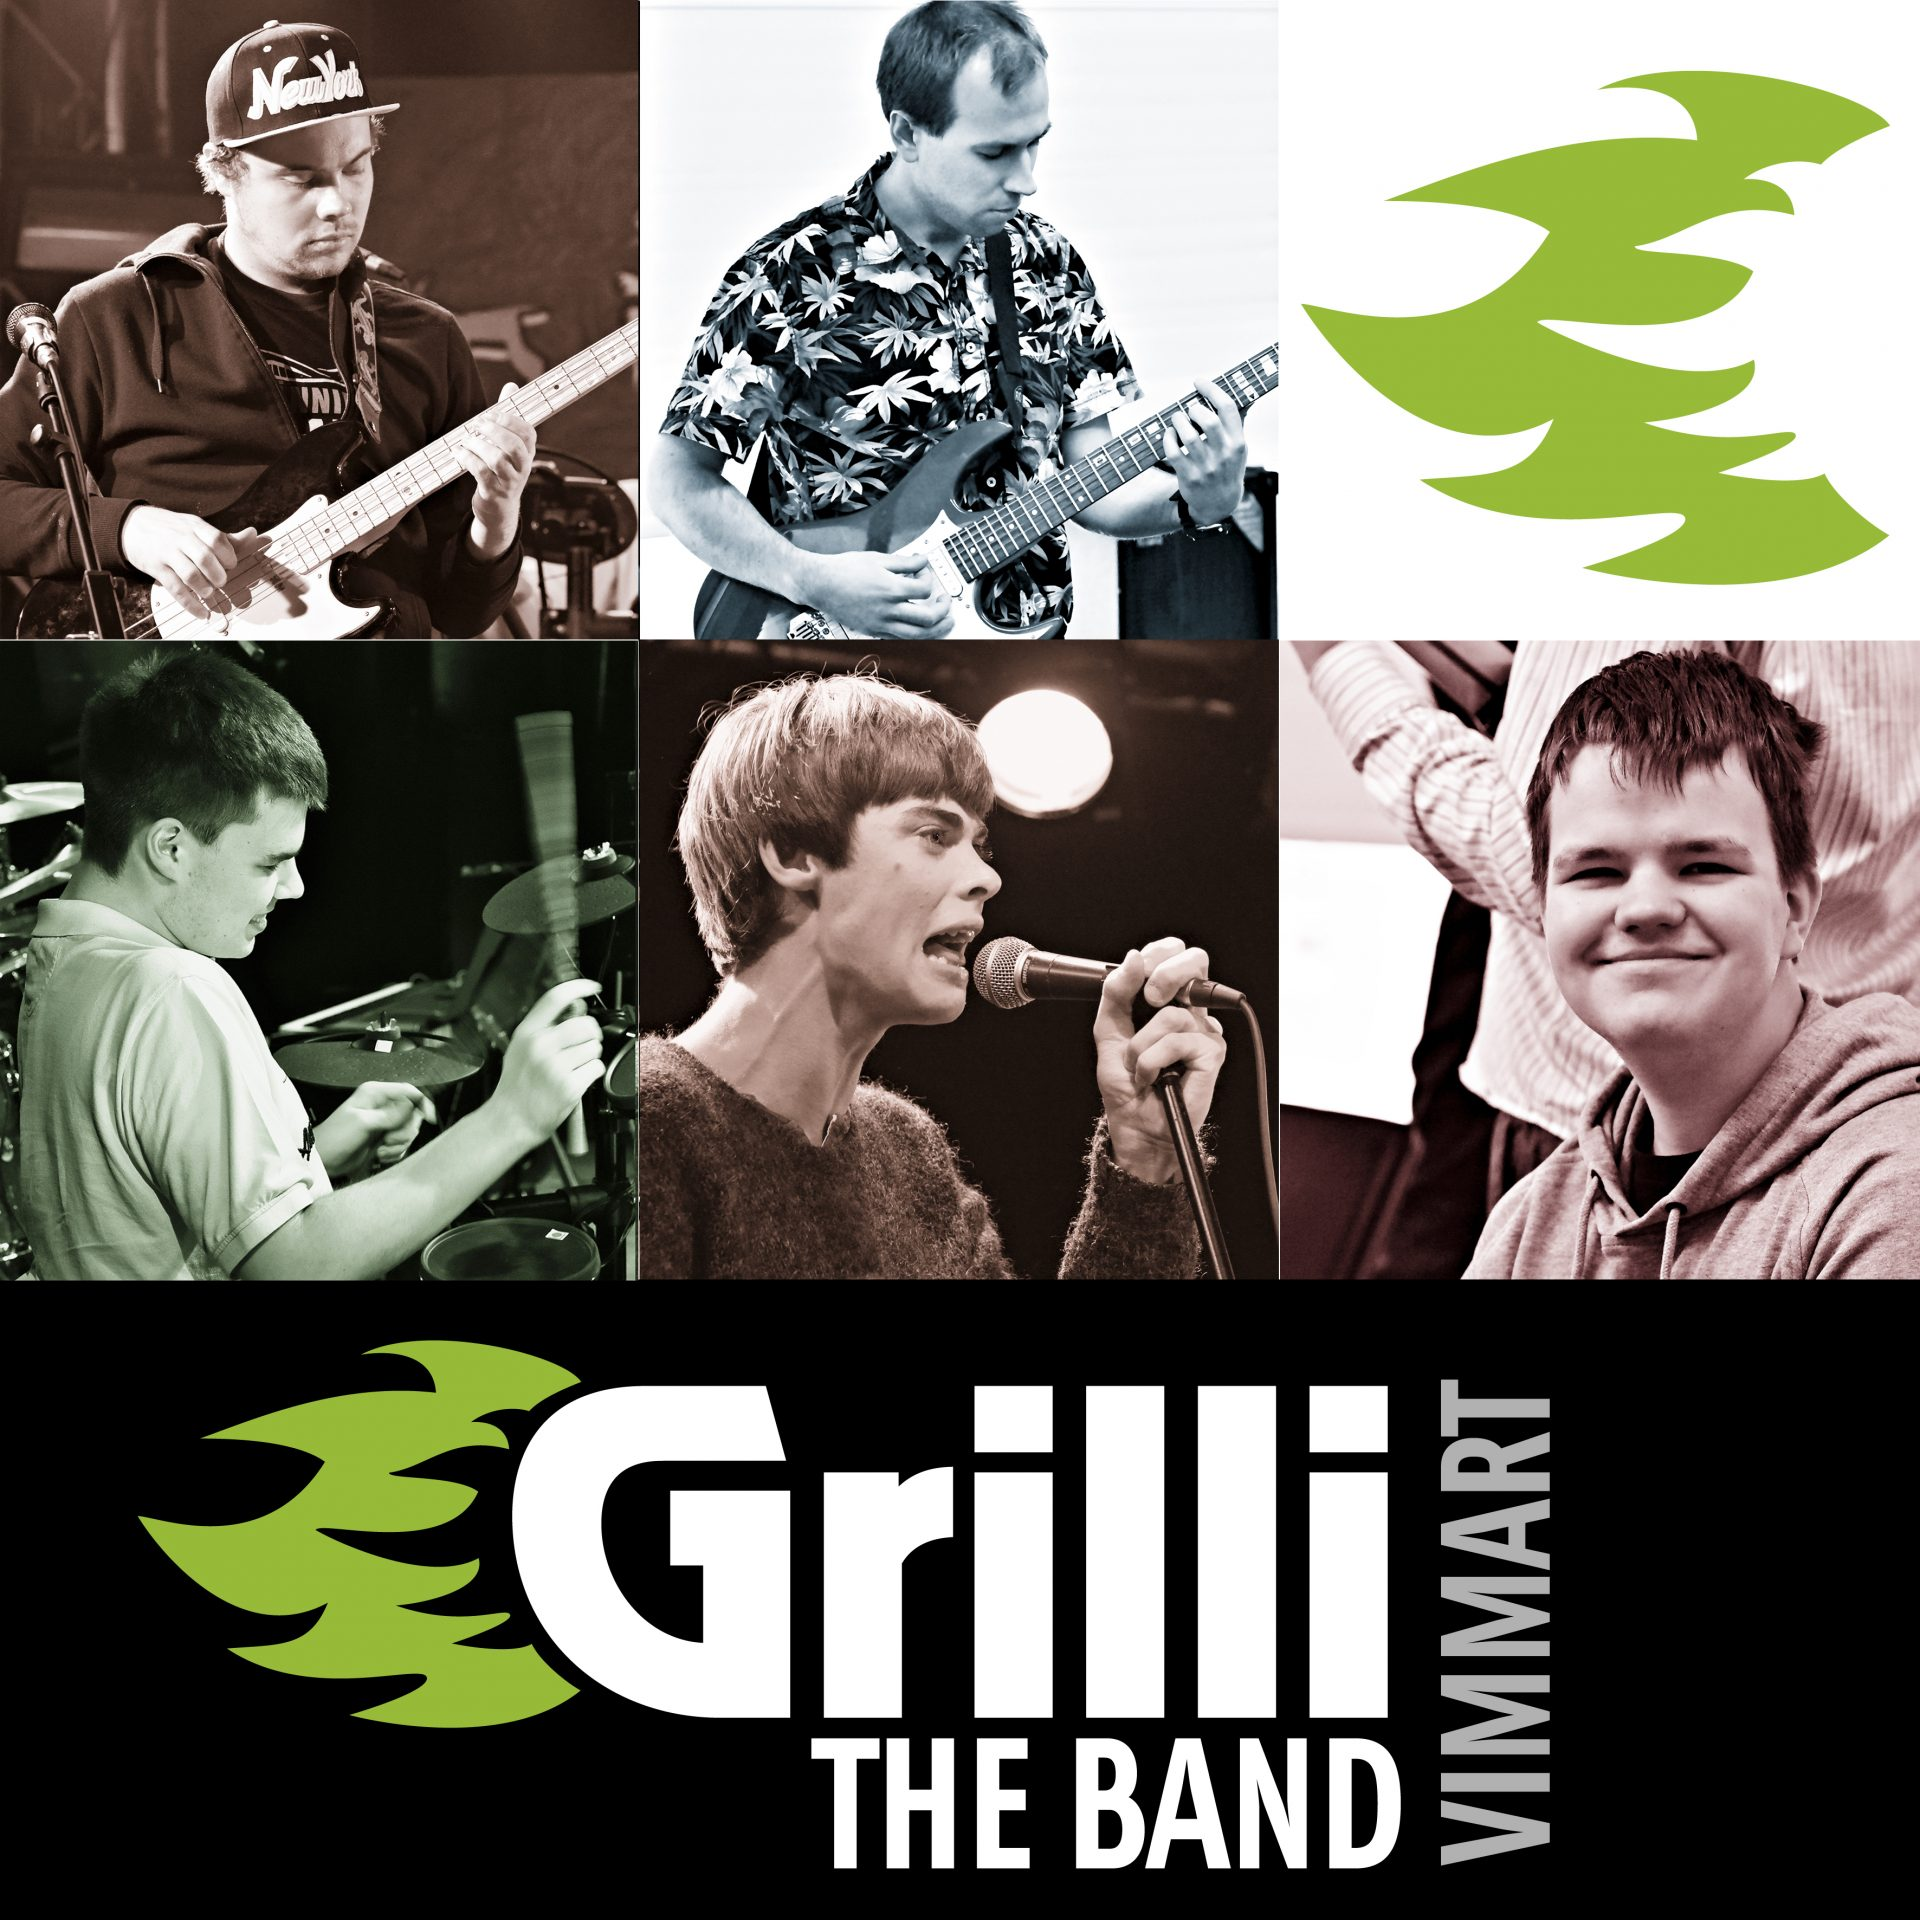 Grilli the Band logo and band members